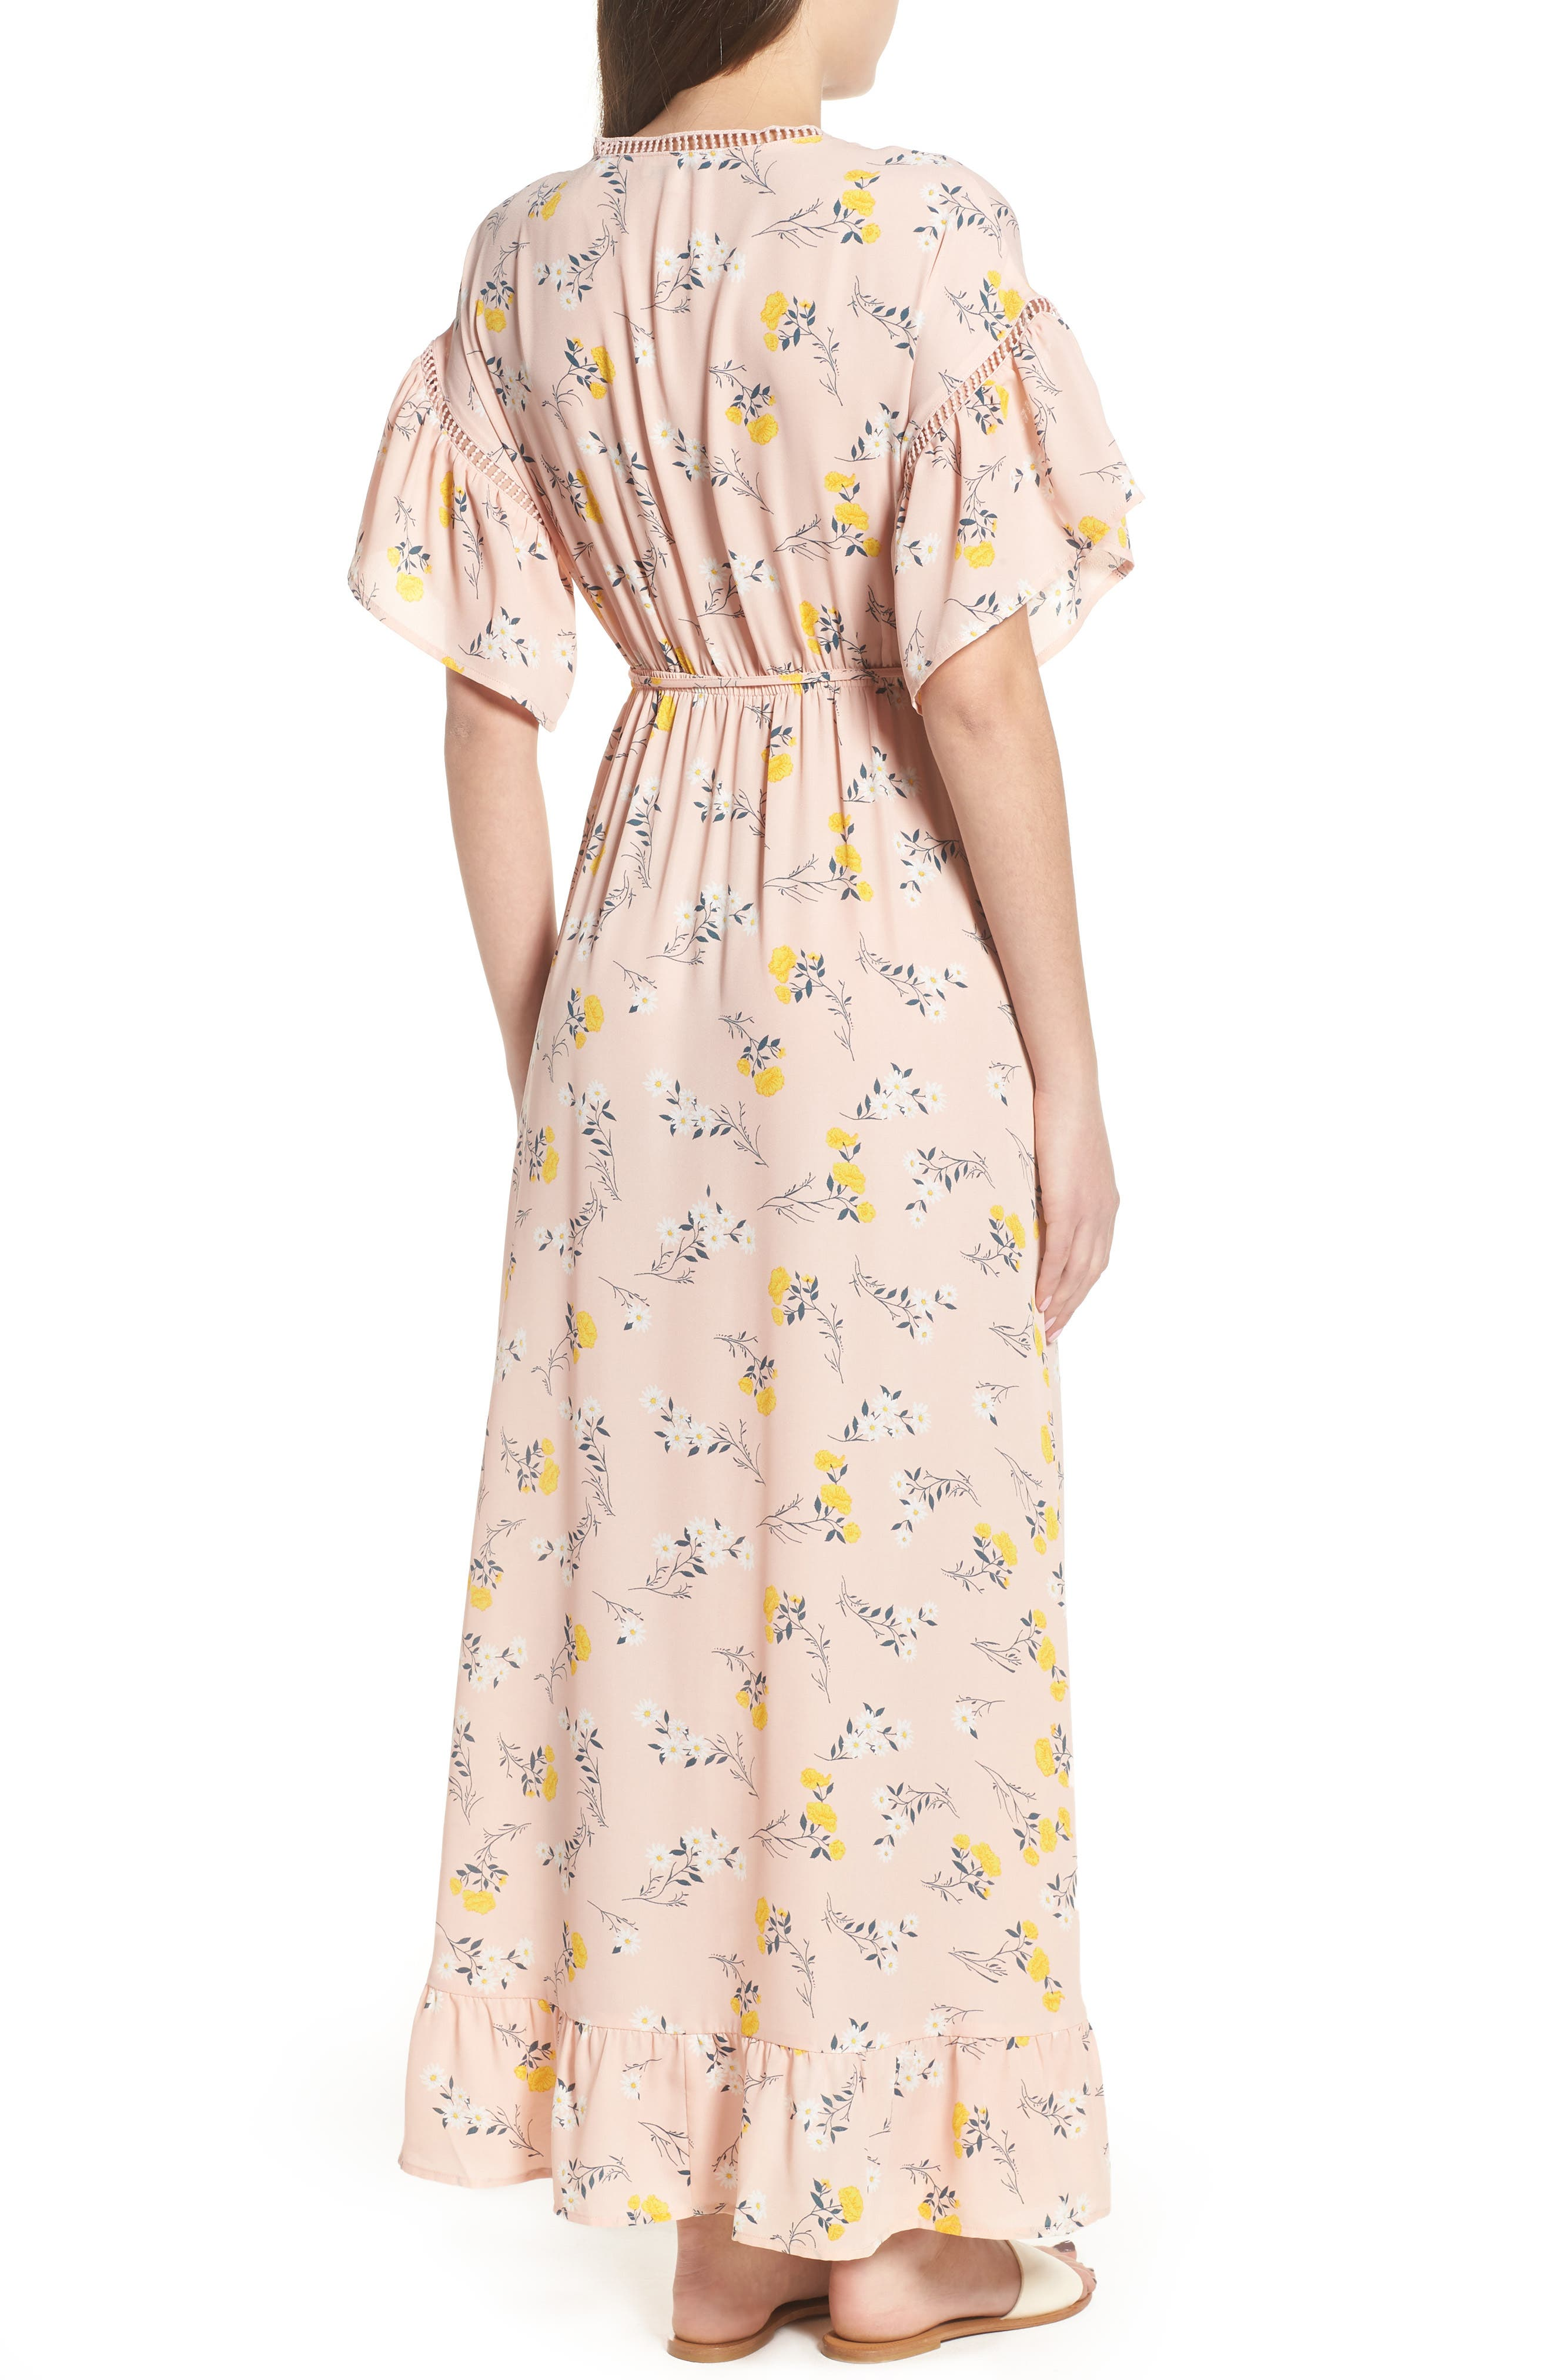 Romance Floral Wrap Style Dress,                             Alternate thumbnail 2, color,                             650